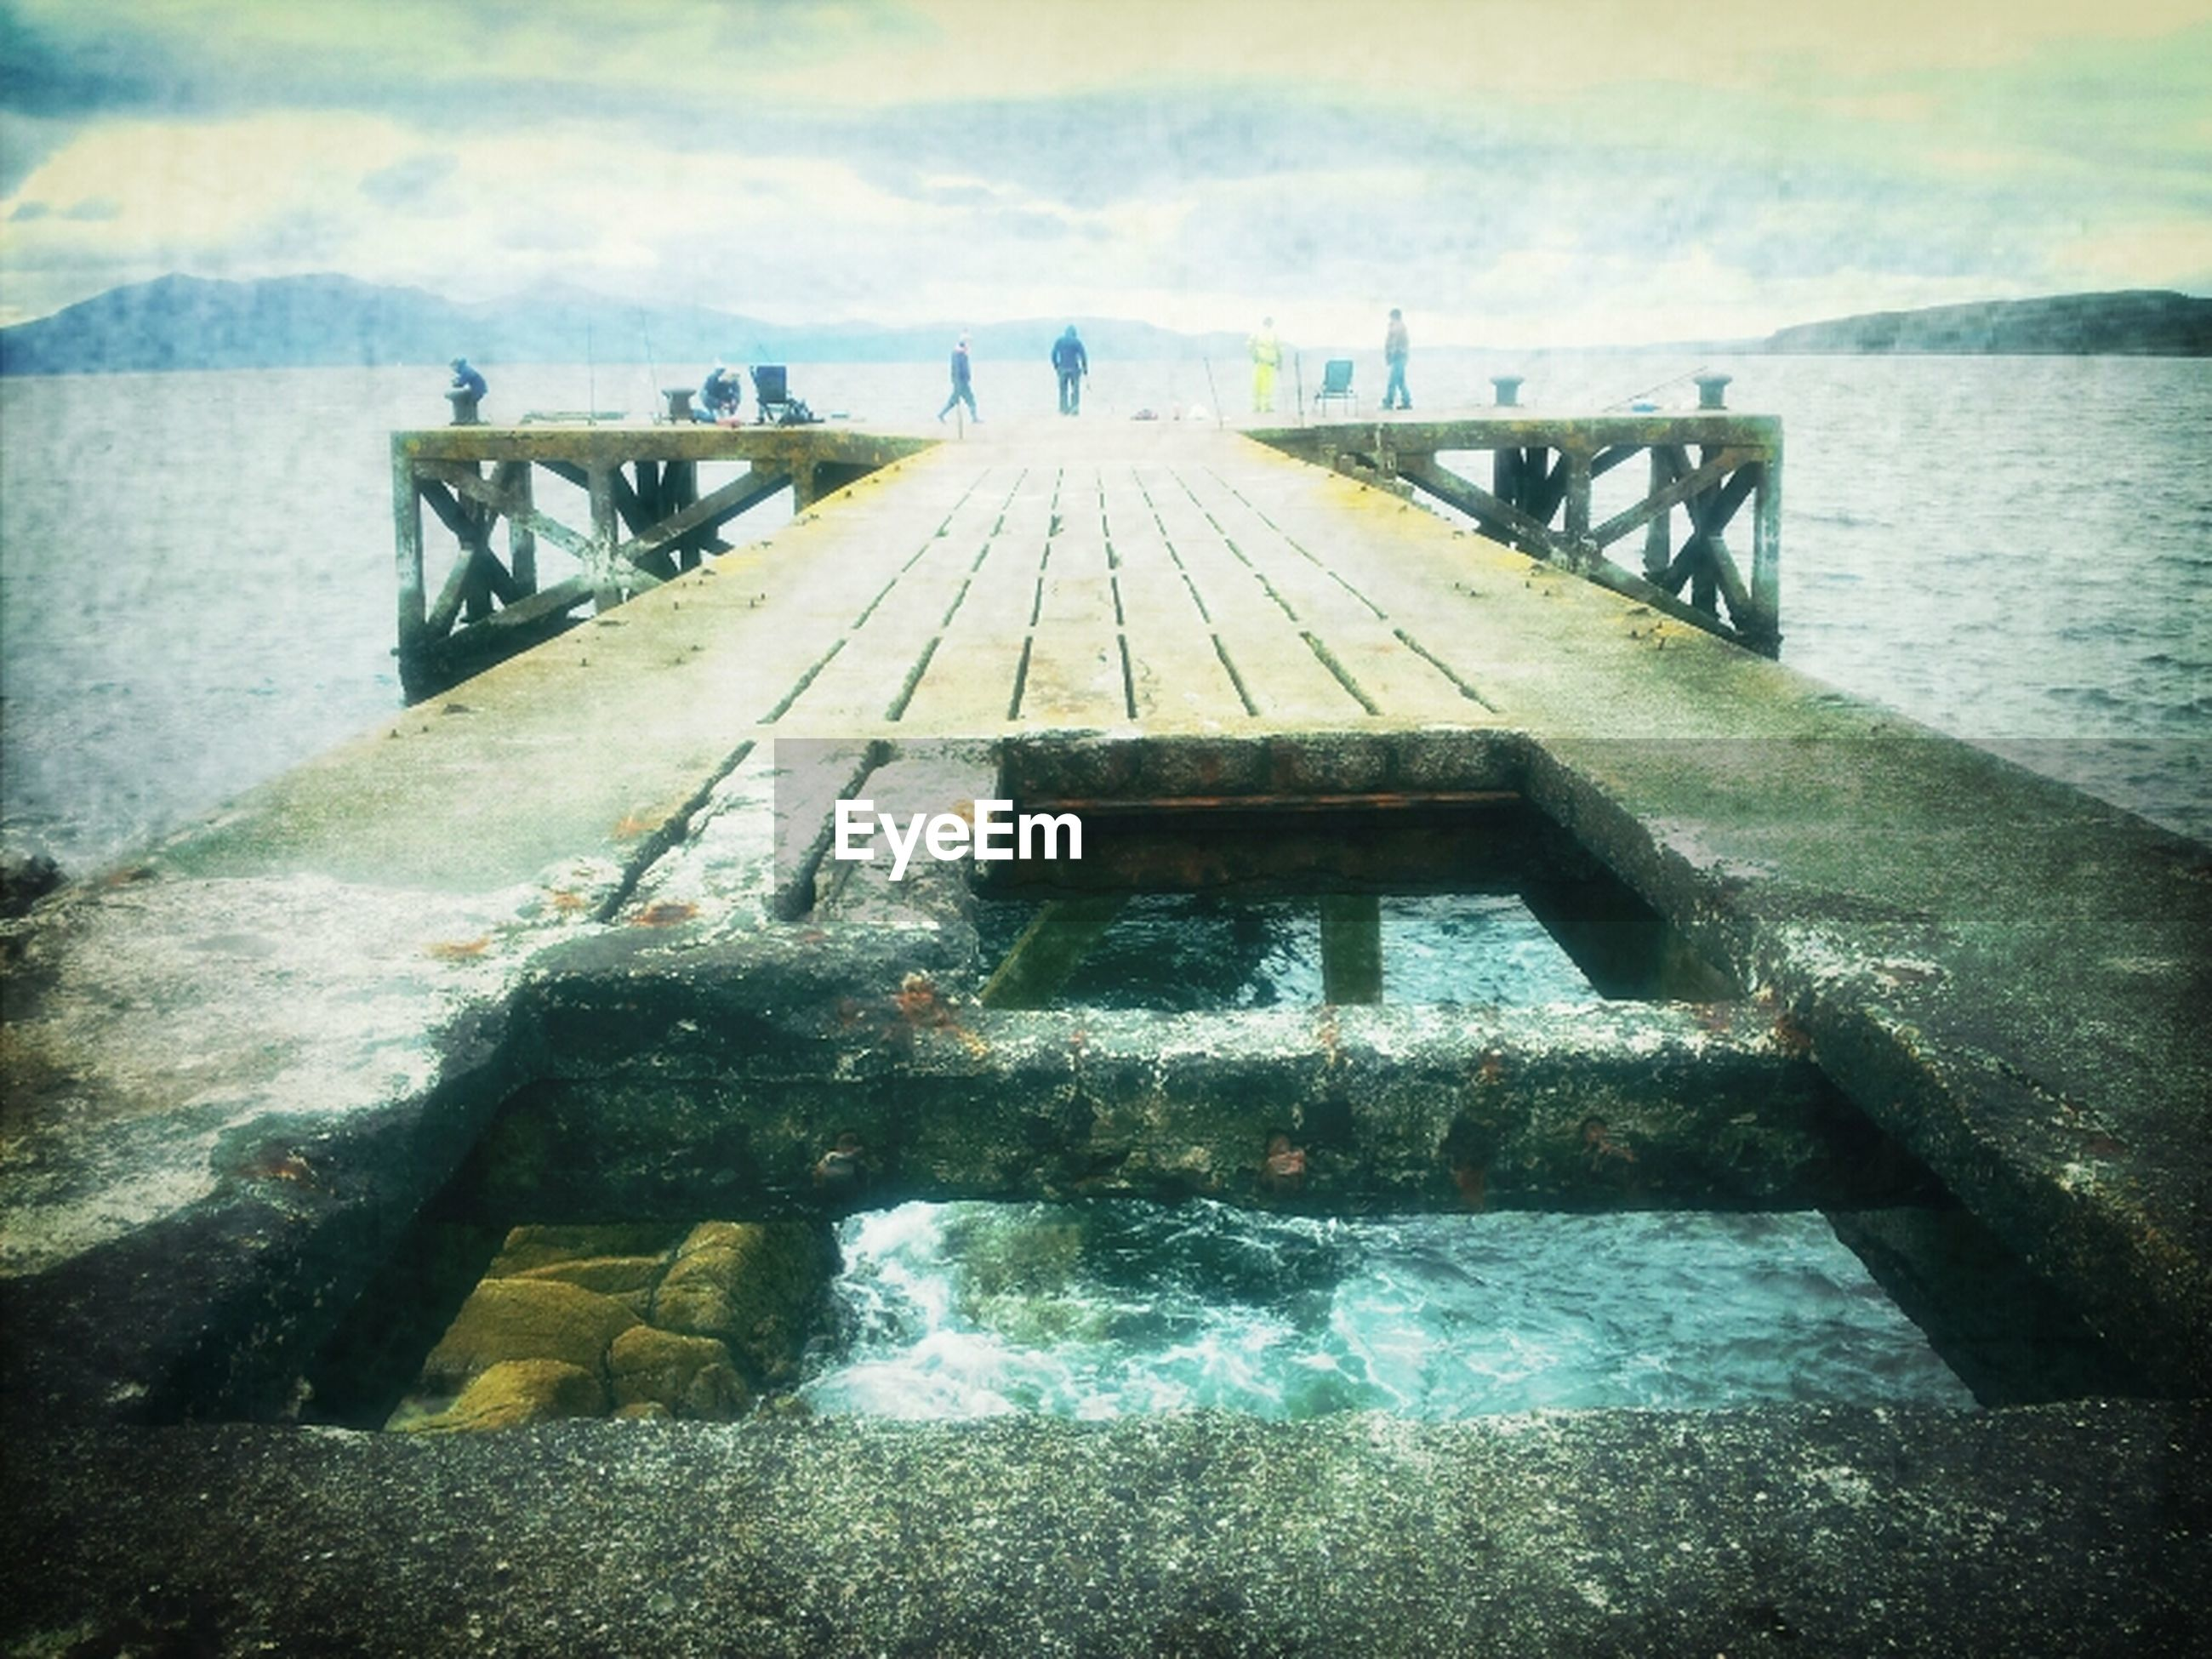 water, sky, sea, built structure, cloud - sky, architecture, pier, tranquility, nature, railing, tranquil scene, bridge - man made structure, scenics, connection, river, rock - object, cloudy, beauty in nature, wood - material, outdoors